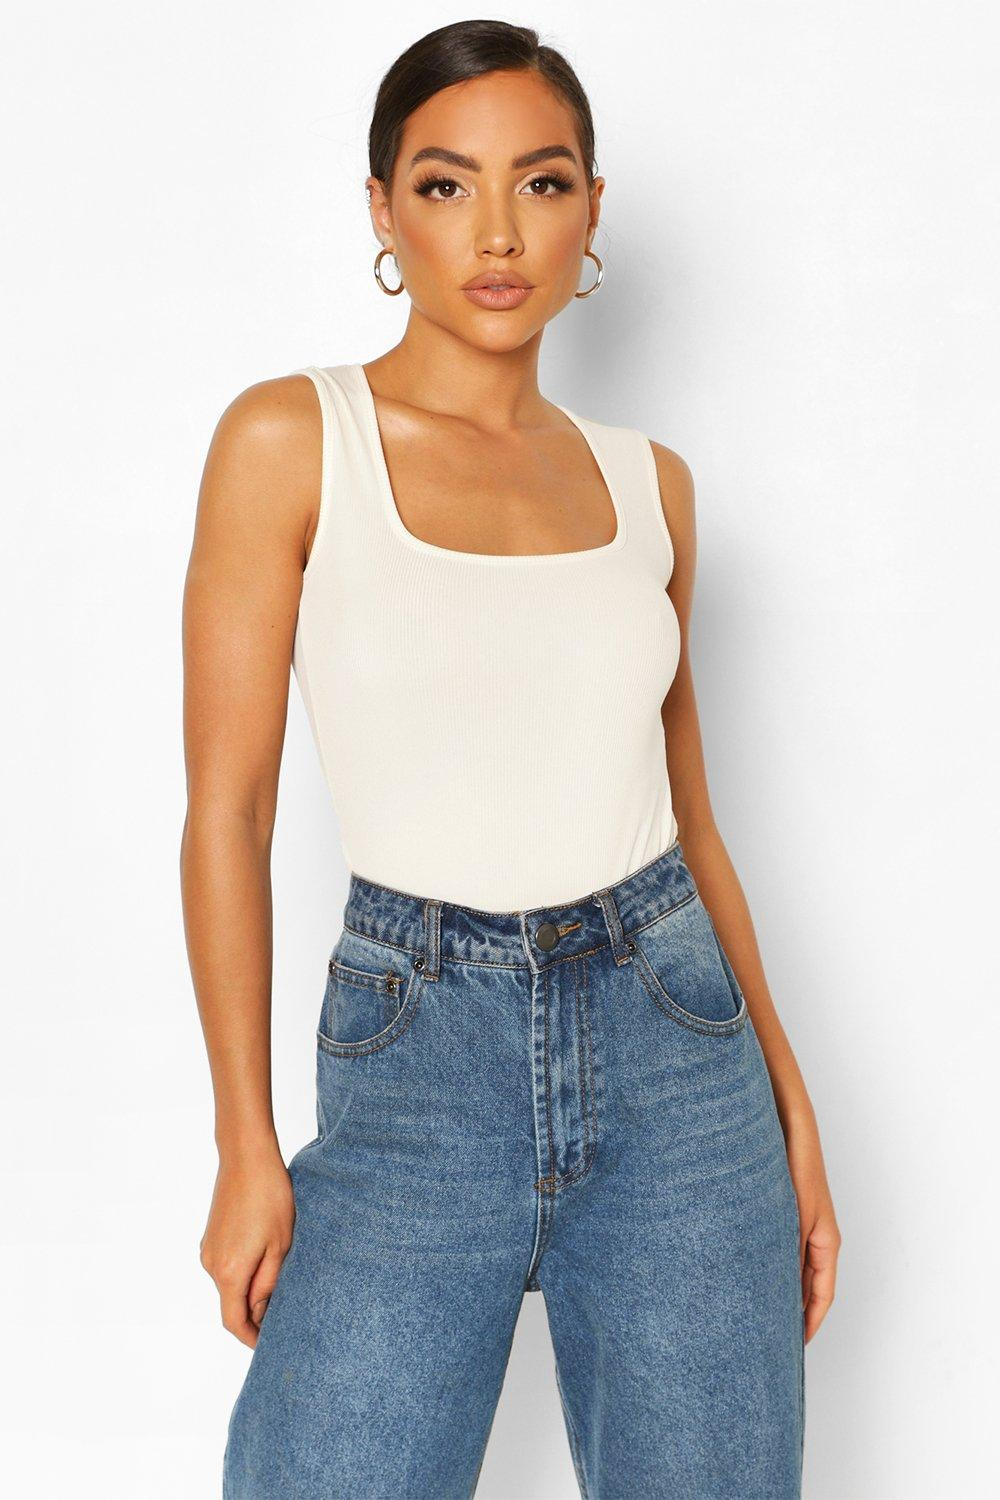 boohoo Womens Rib Scoop Neck Bodysuit - Cream - 6, Cream